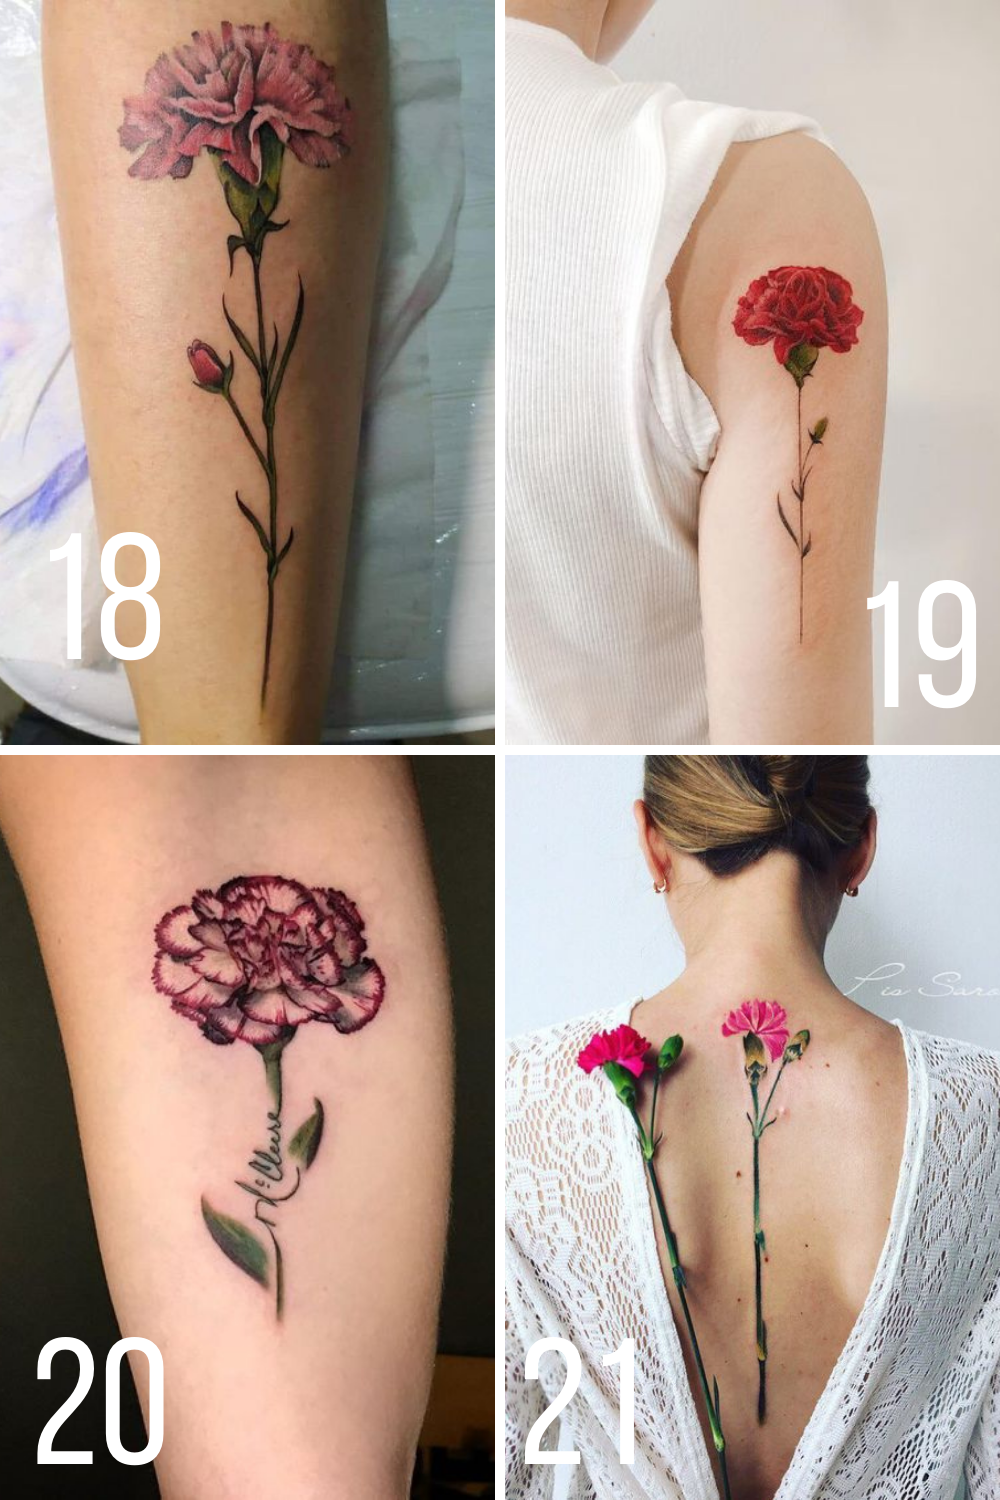 Colorful Long Stem Flower Tattoos For Backs and Arms